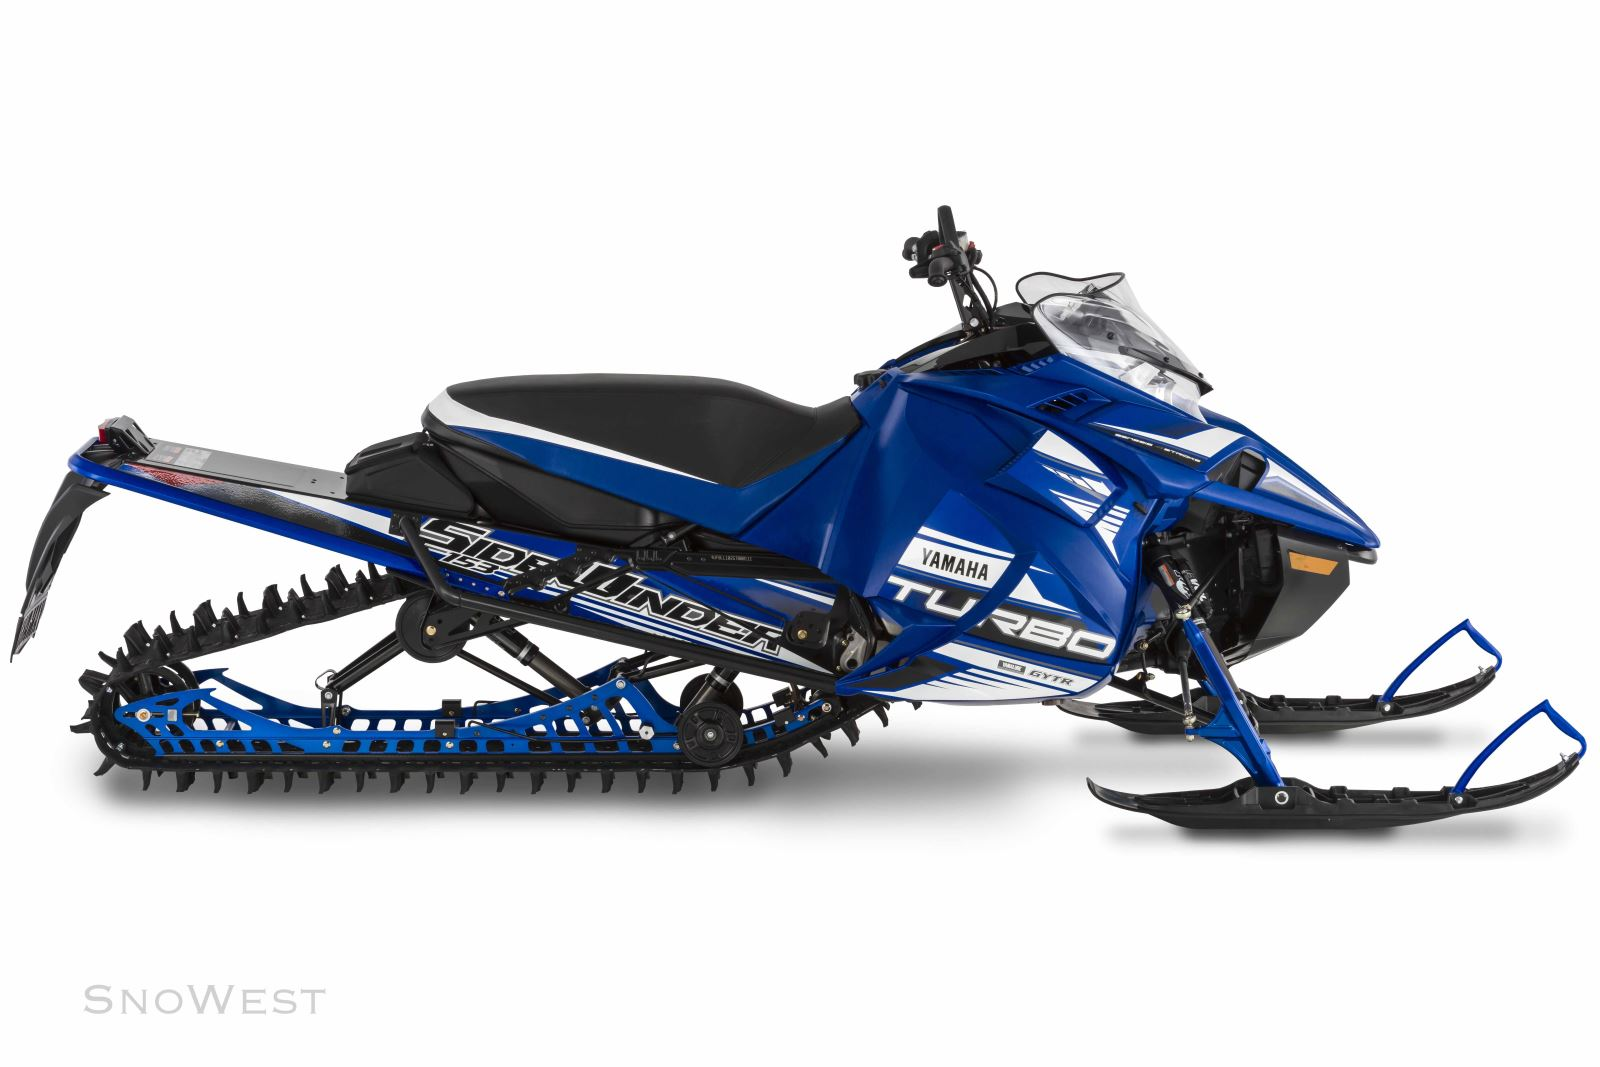 Yamaha Sidewinder Weight